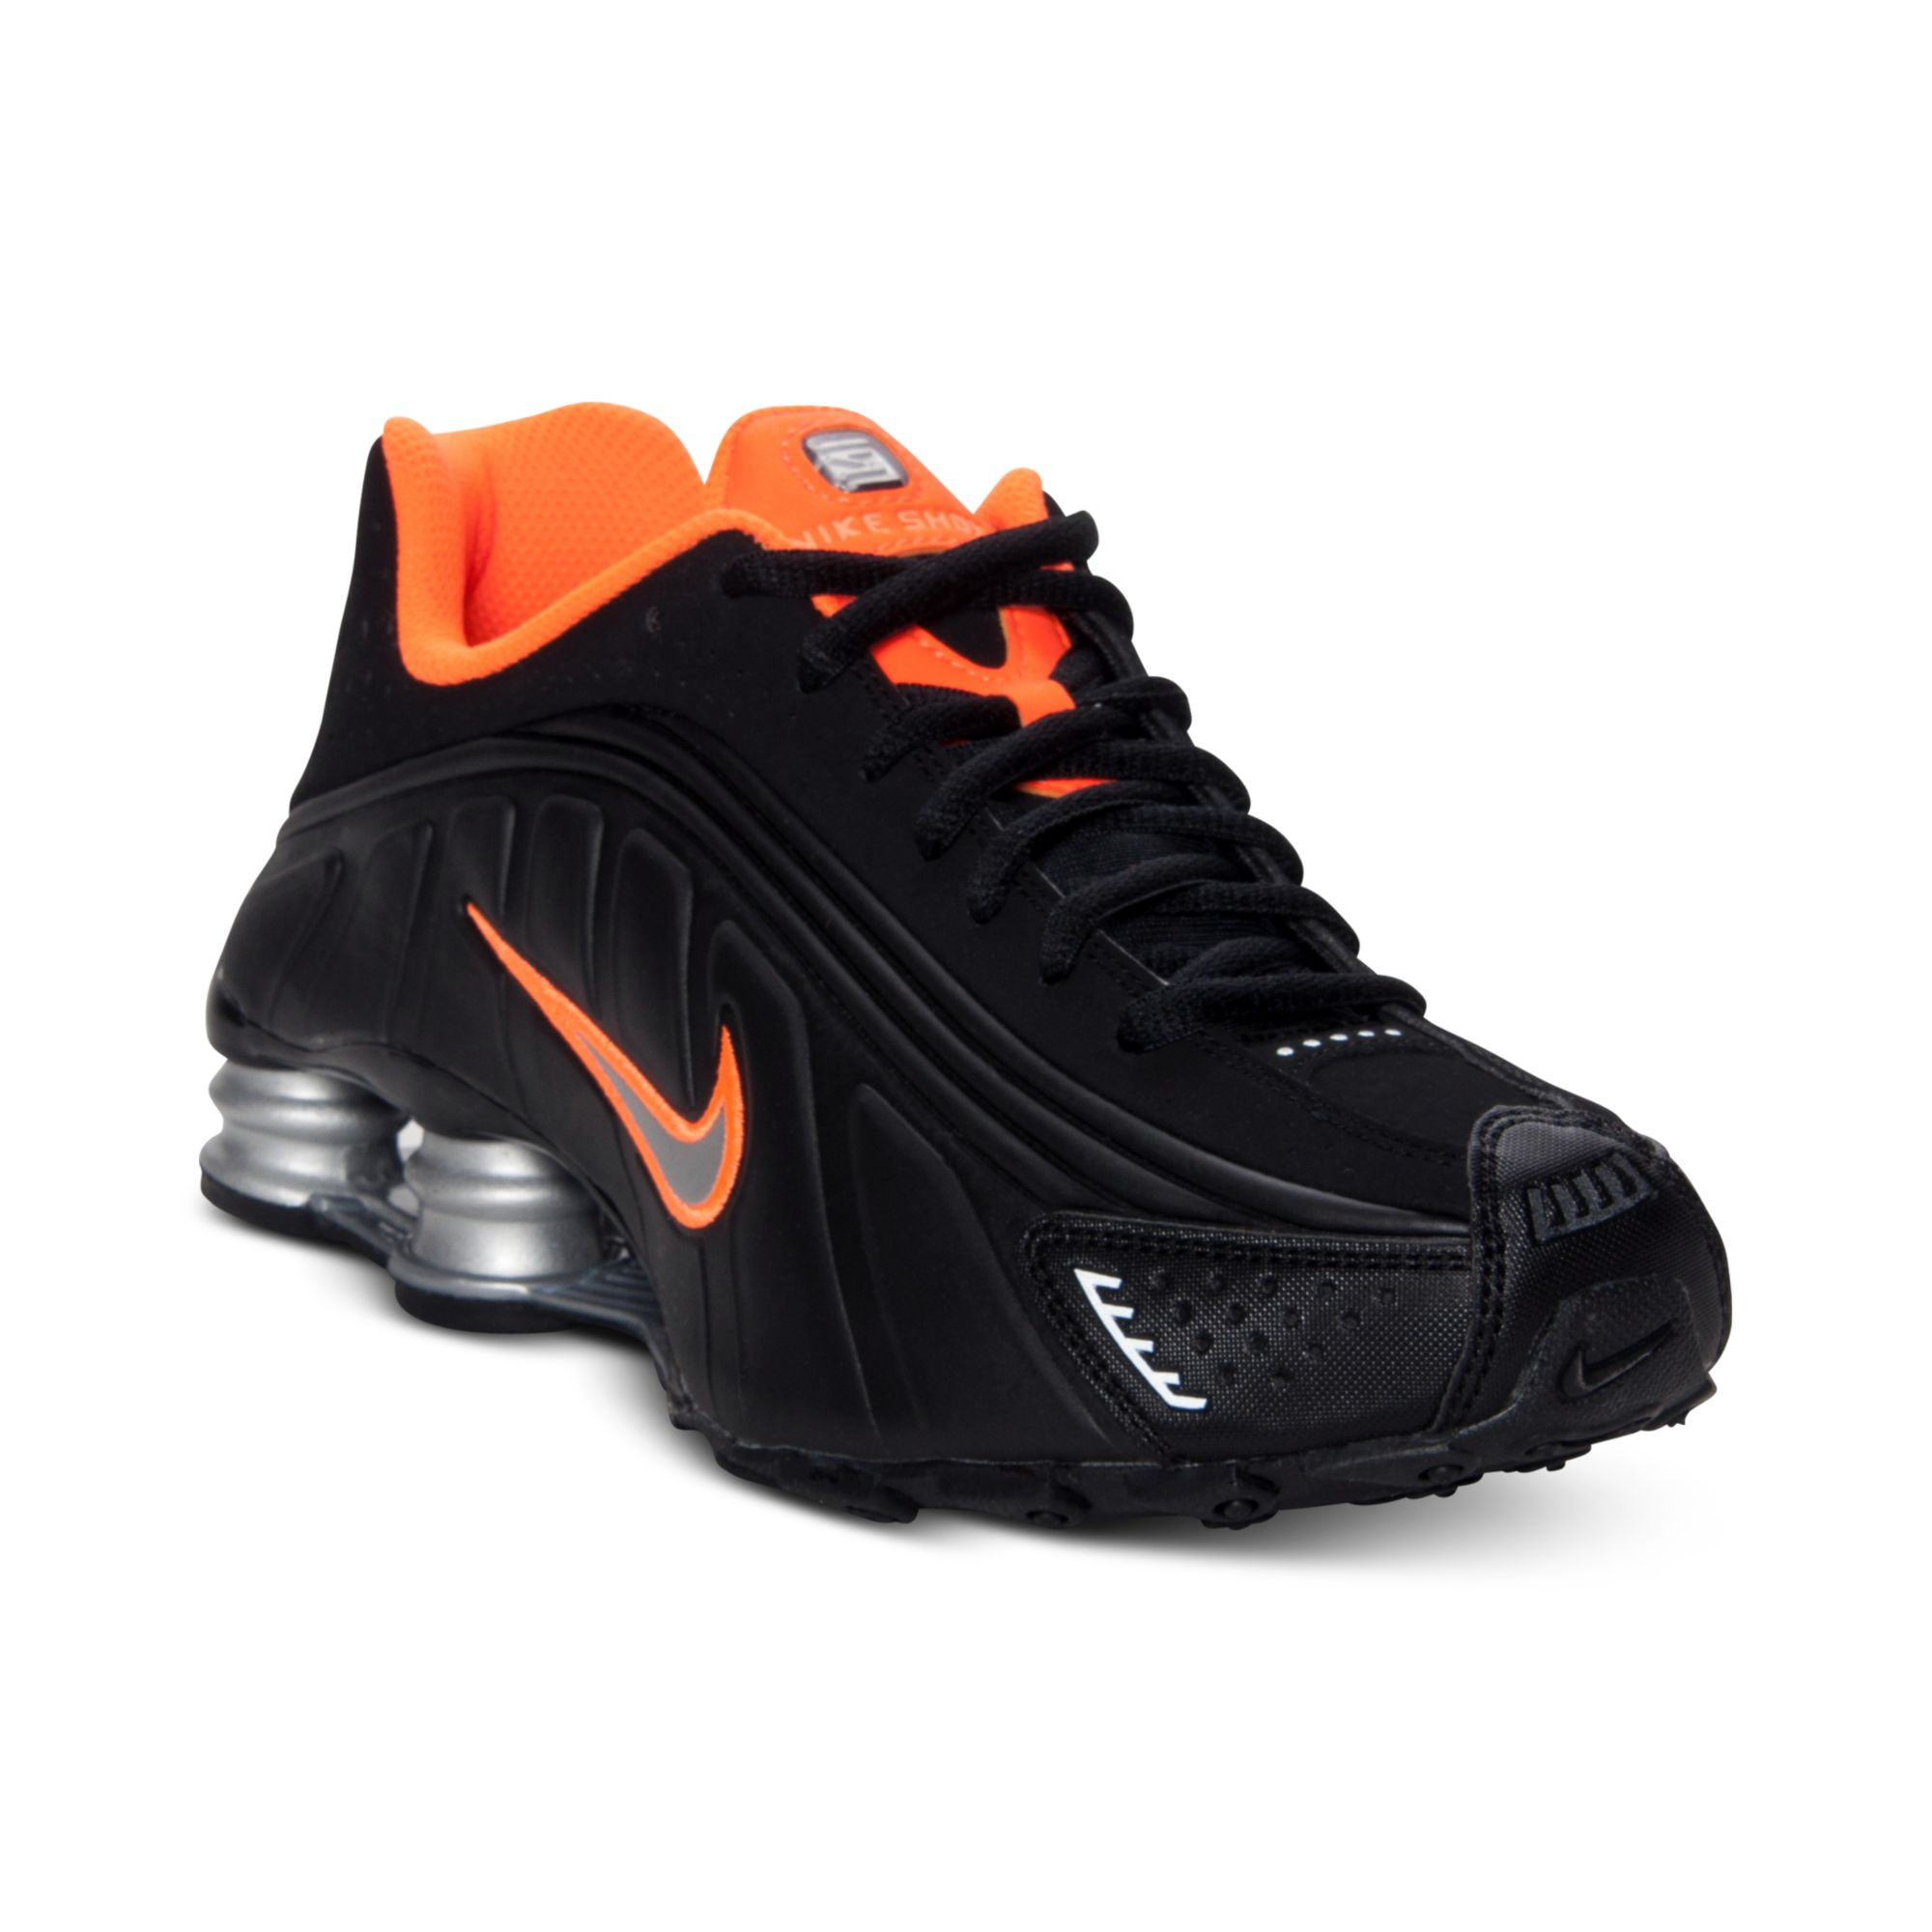 Lyst - Nike Boys Shox R4 Running Sneakers in Black af9963949